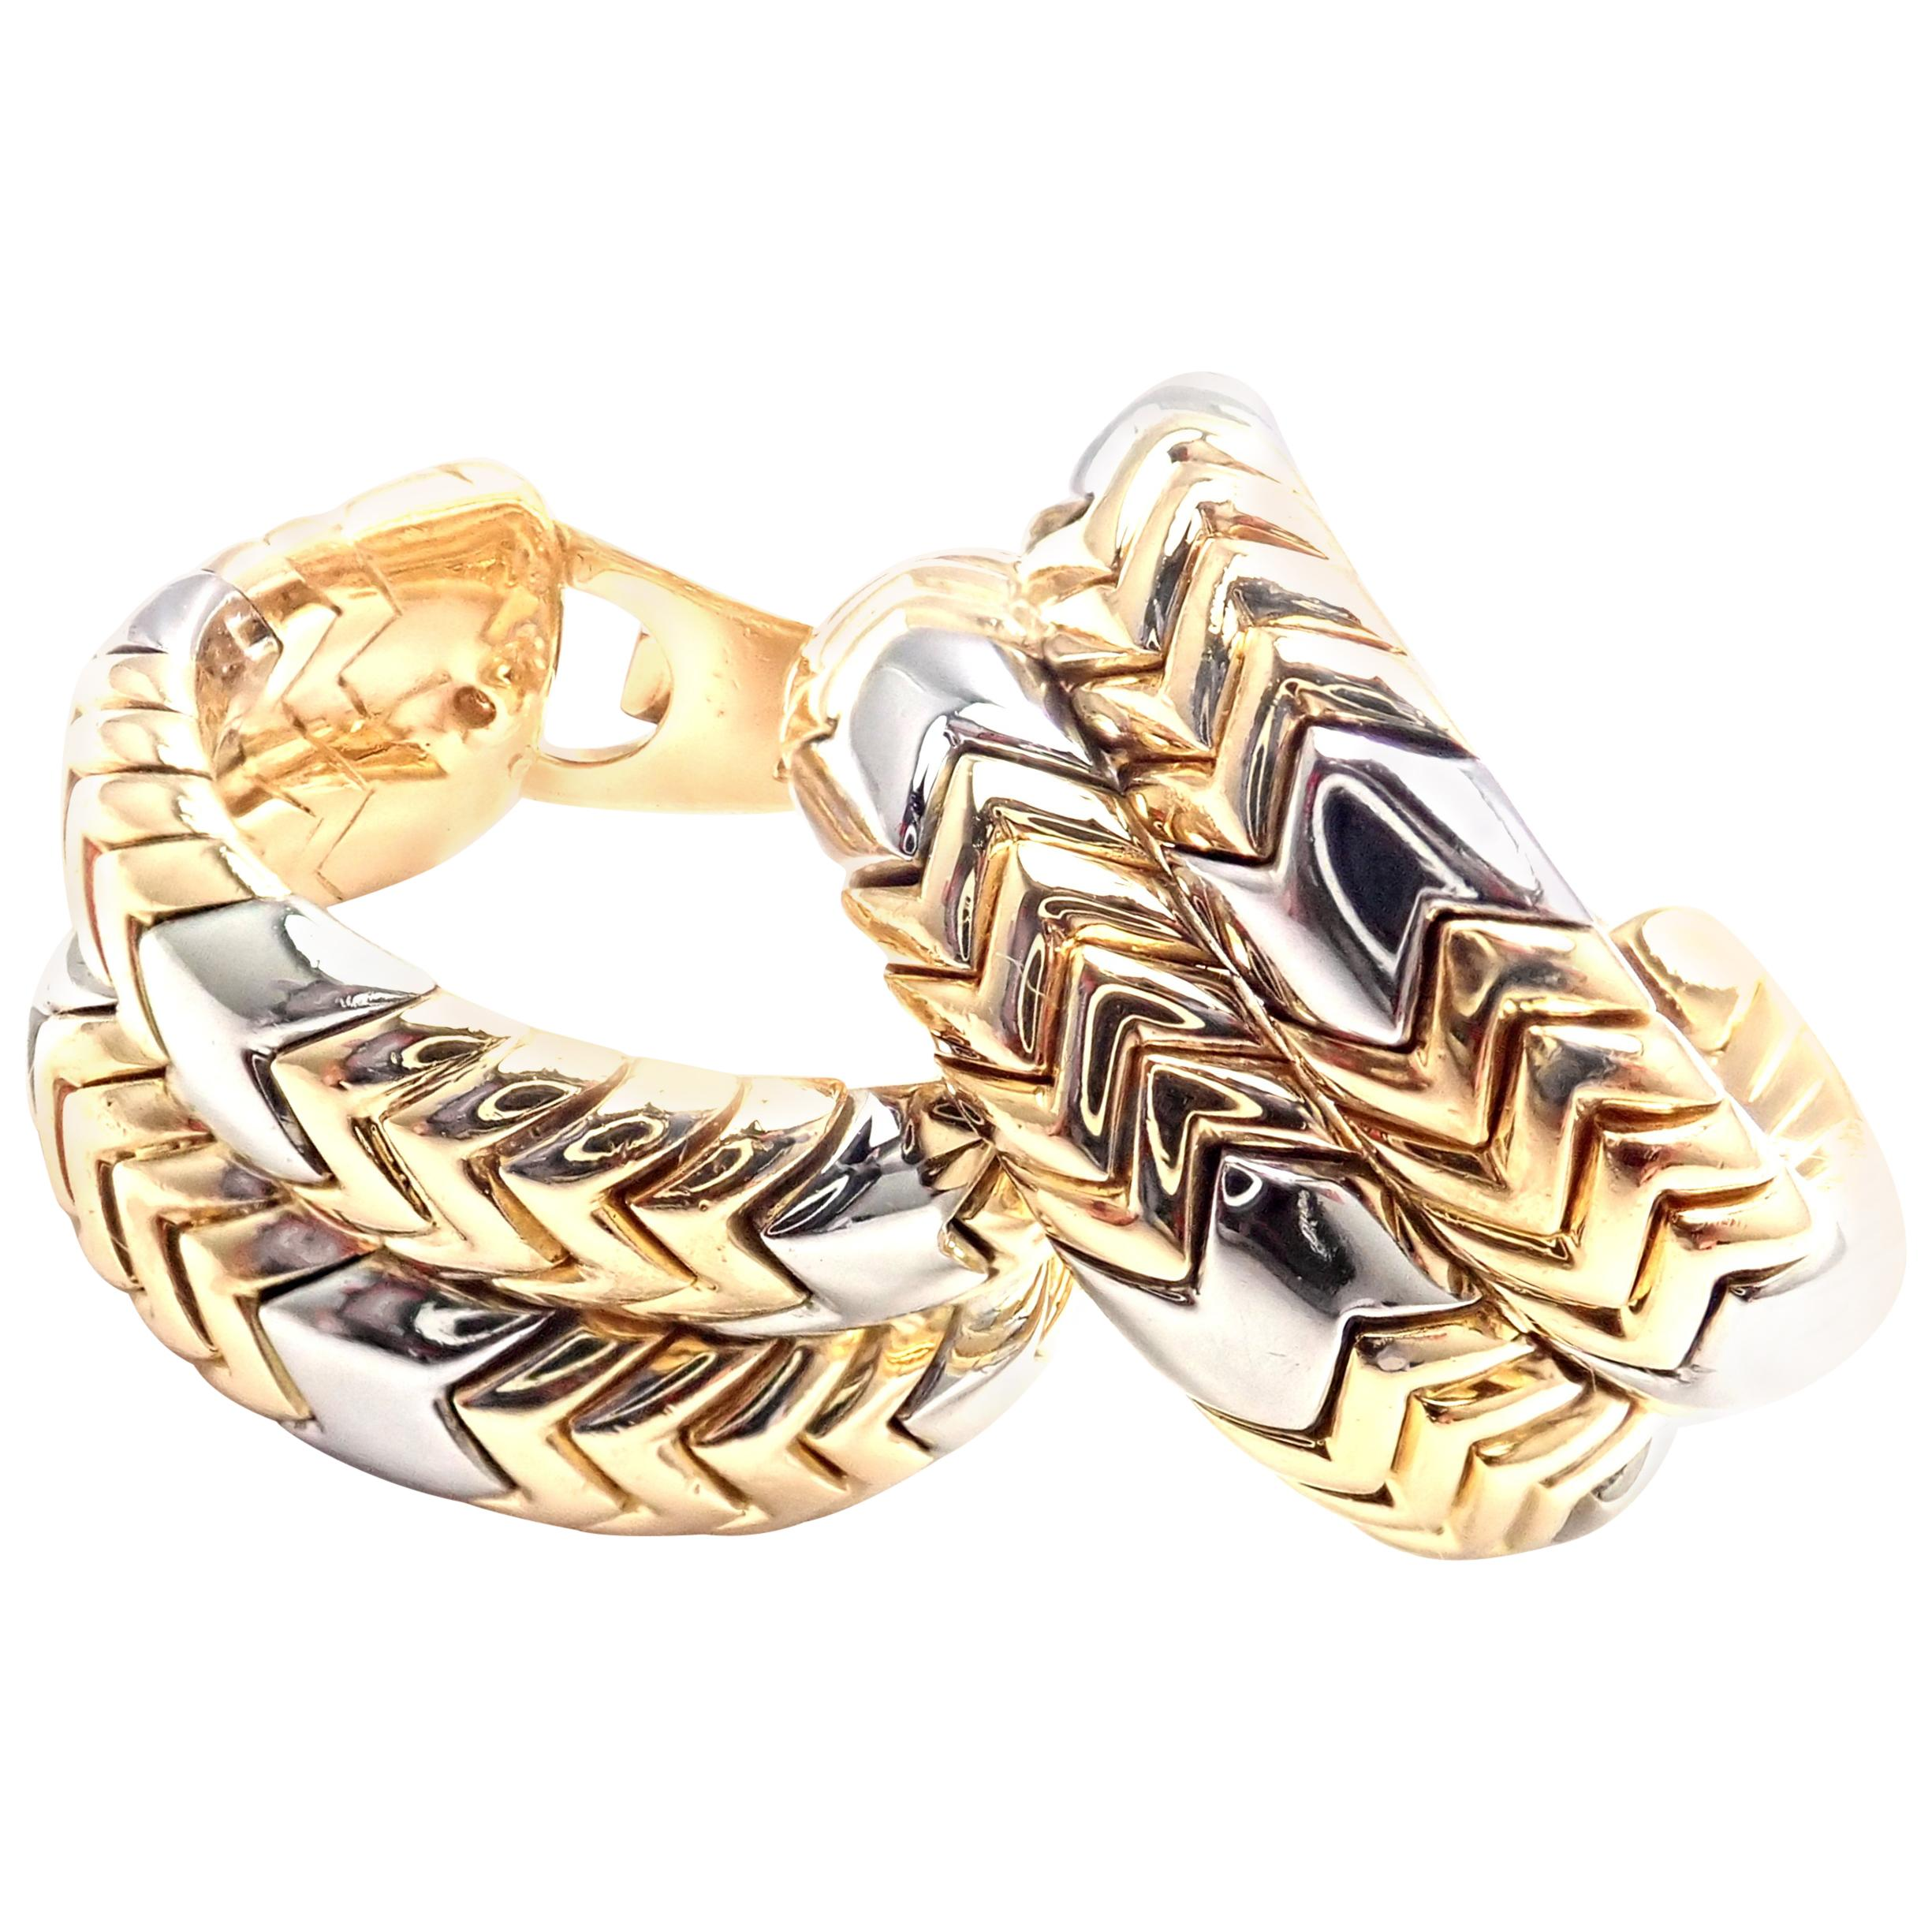 Bulgari Bvlgari Spiga Yellow Gold and Stainless Steel Hoop Earrings